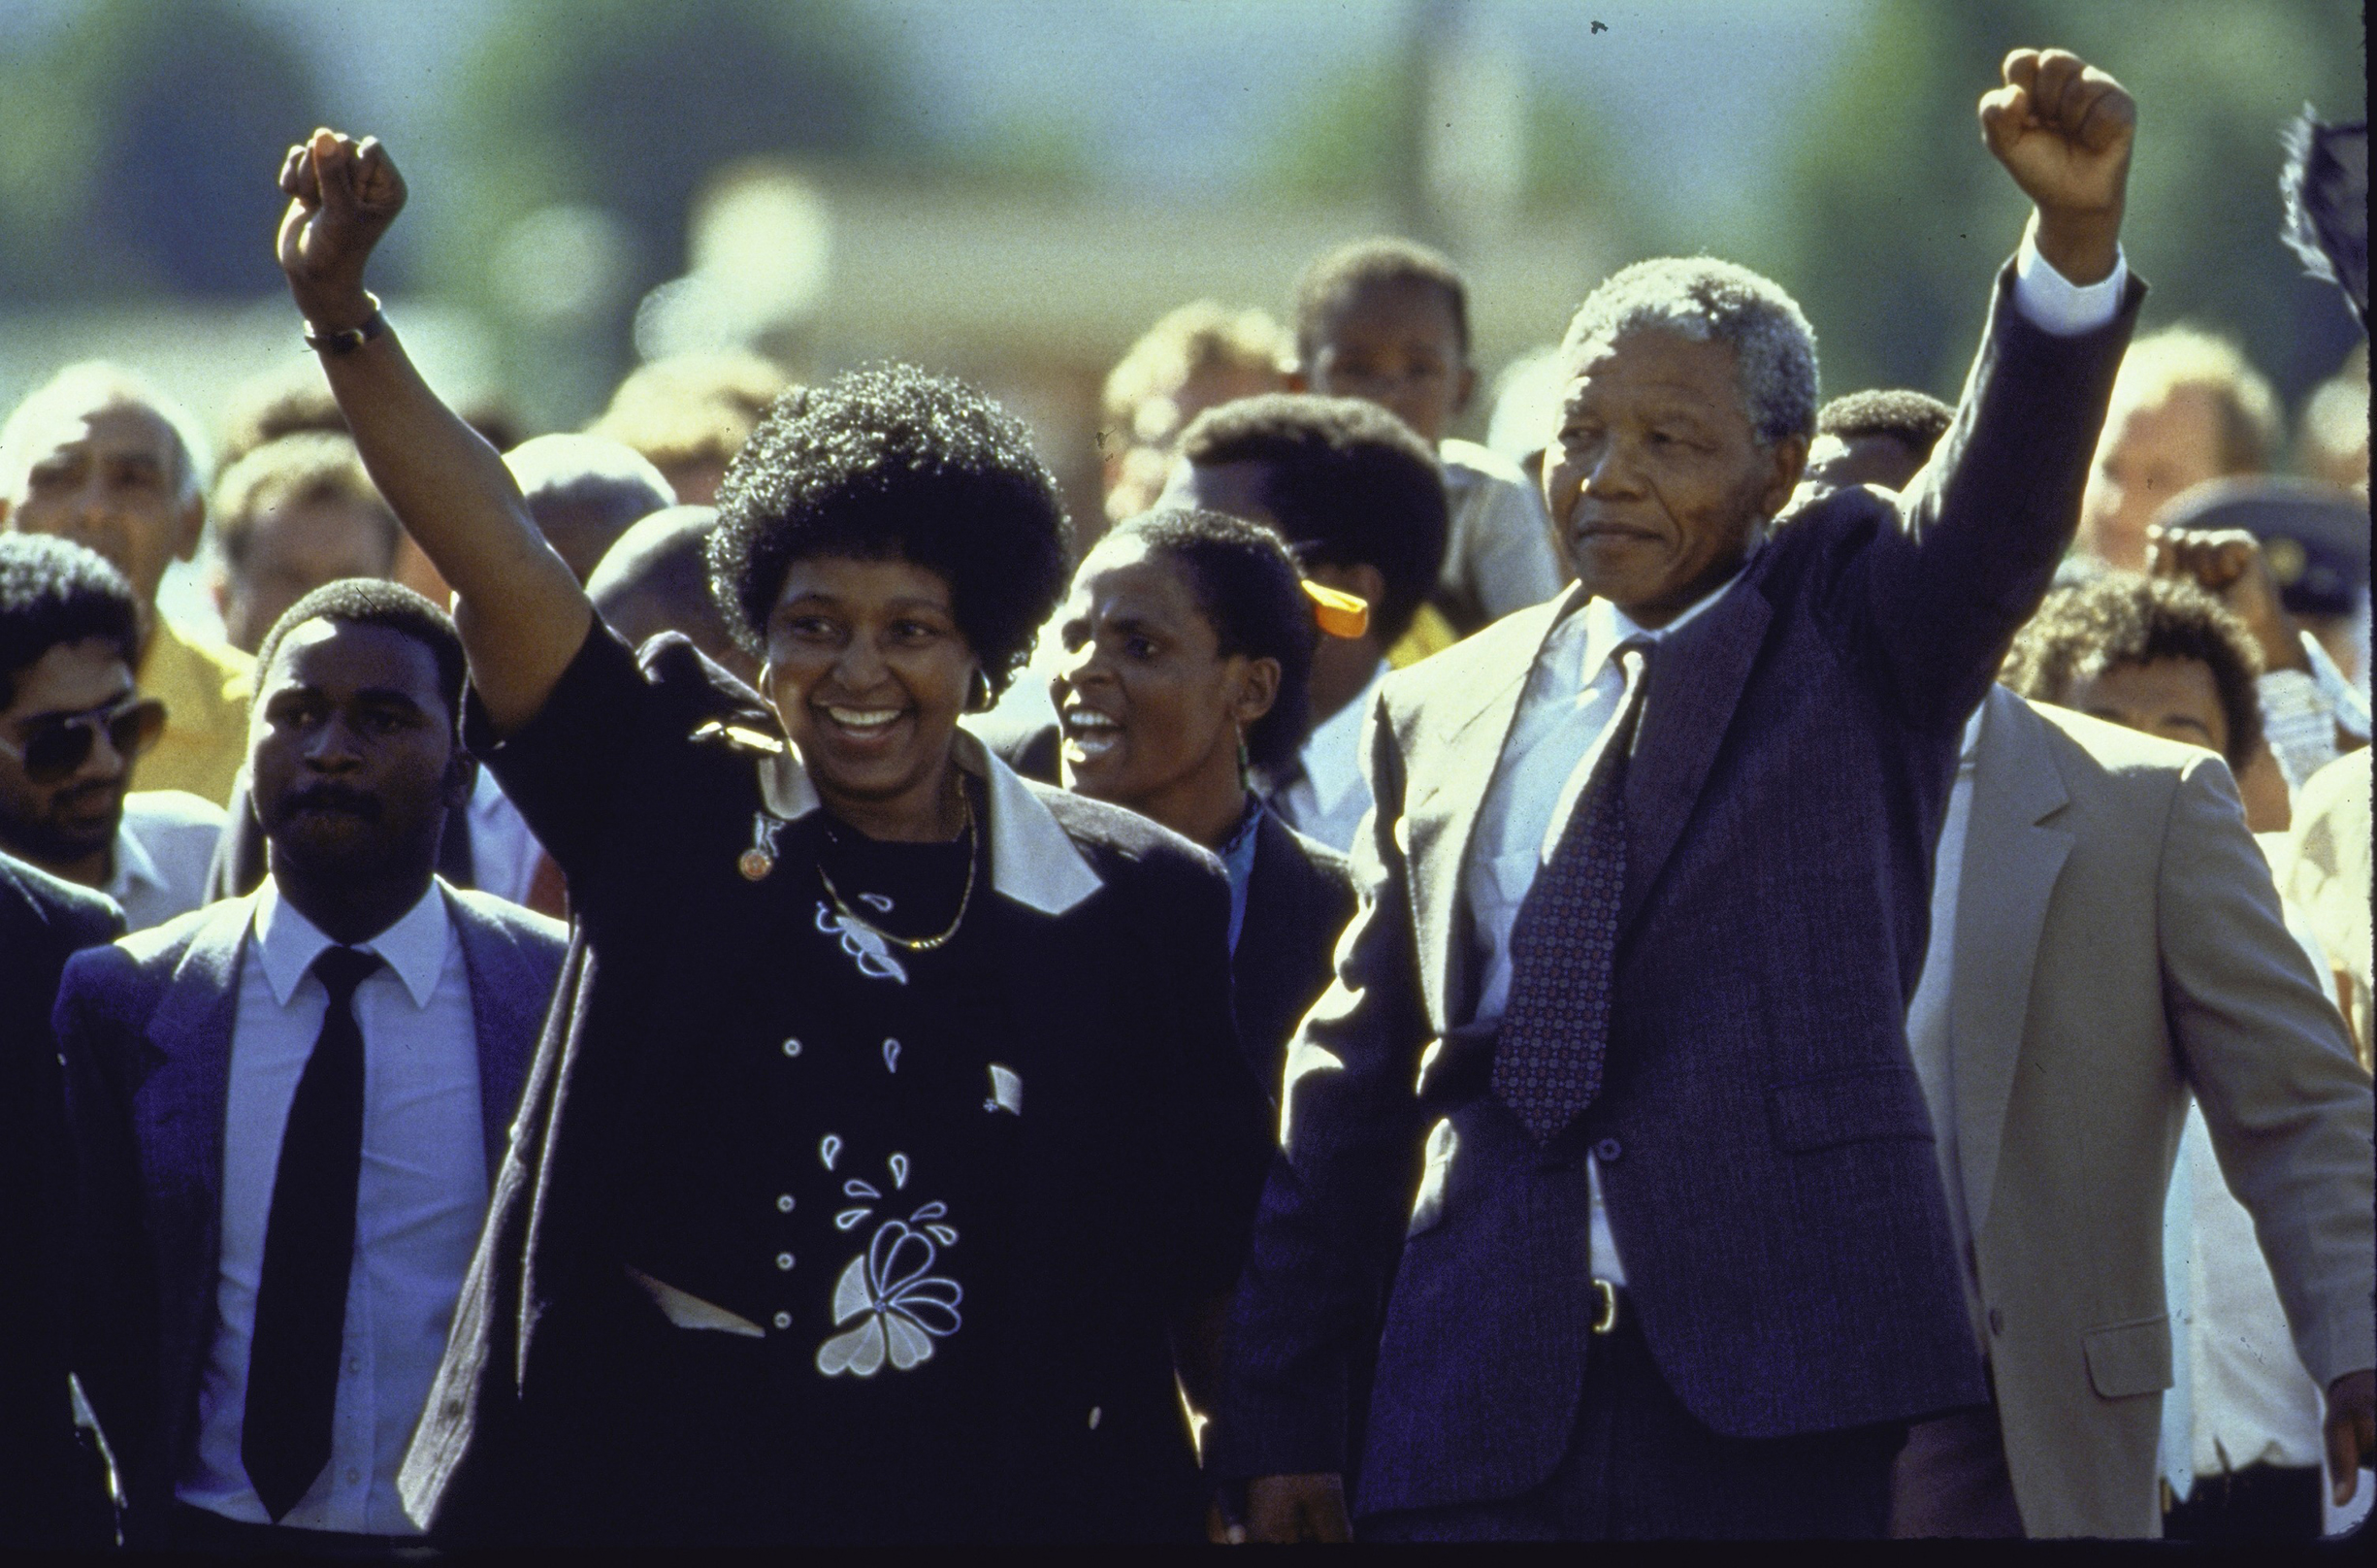 Madikizela-Mandela and her husband Nelson Mandela raise their fists in 1990 upon his release from prison after 27 years